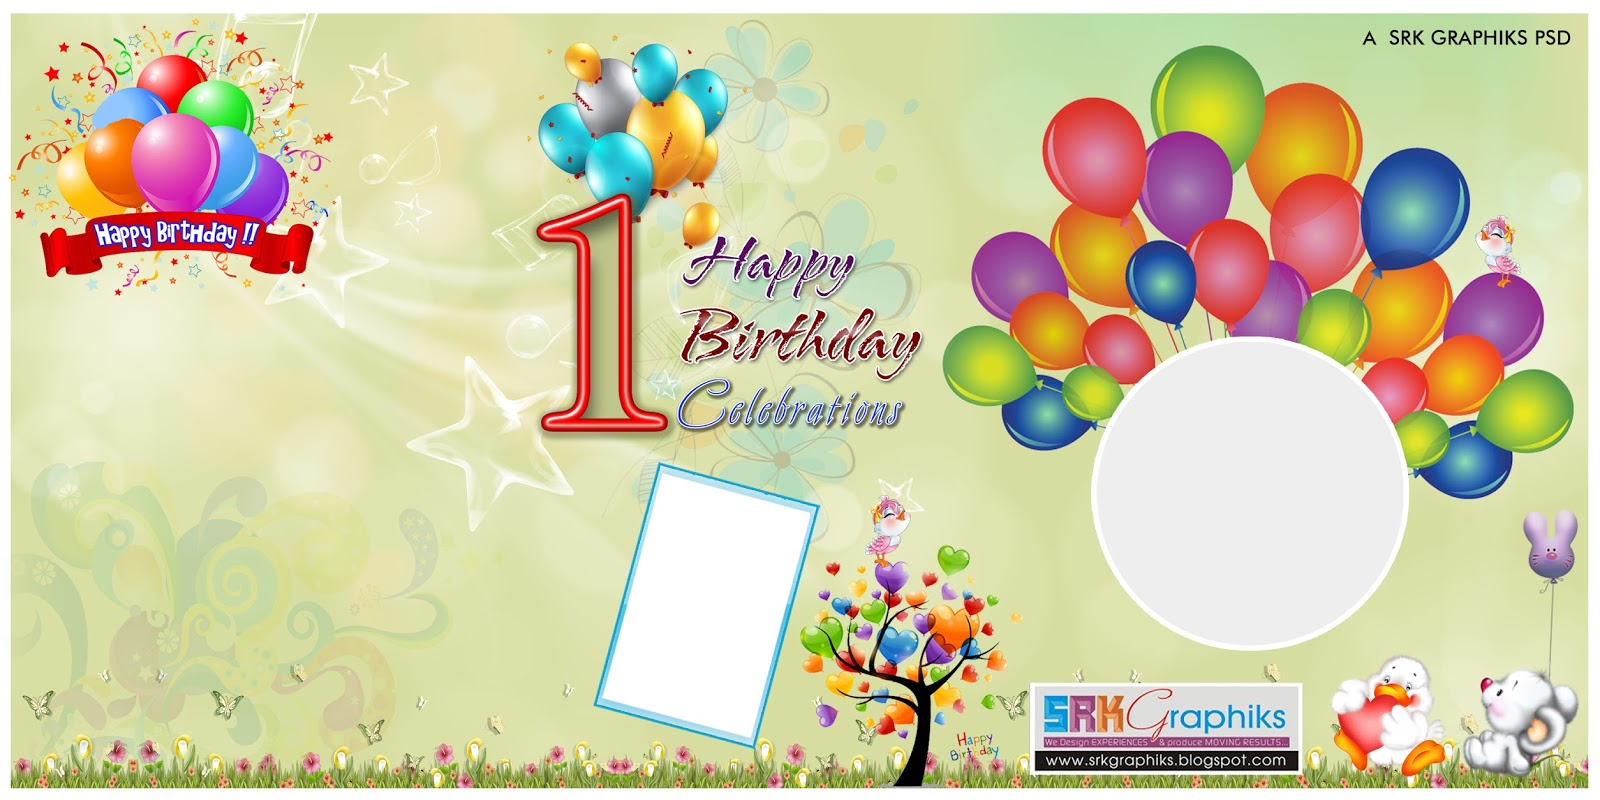 birthday poster making ; birthday%2520poster%2520design%2520template%2520;%25205%25252B%252525C3%25252597%25252B10